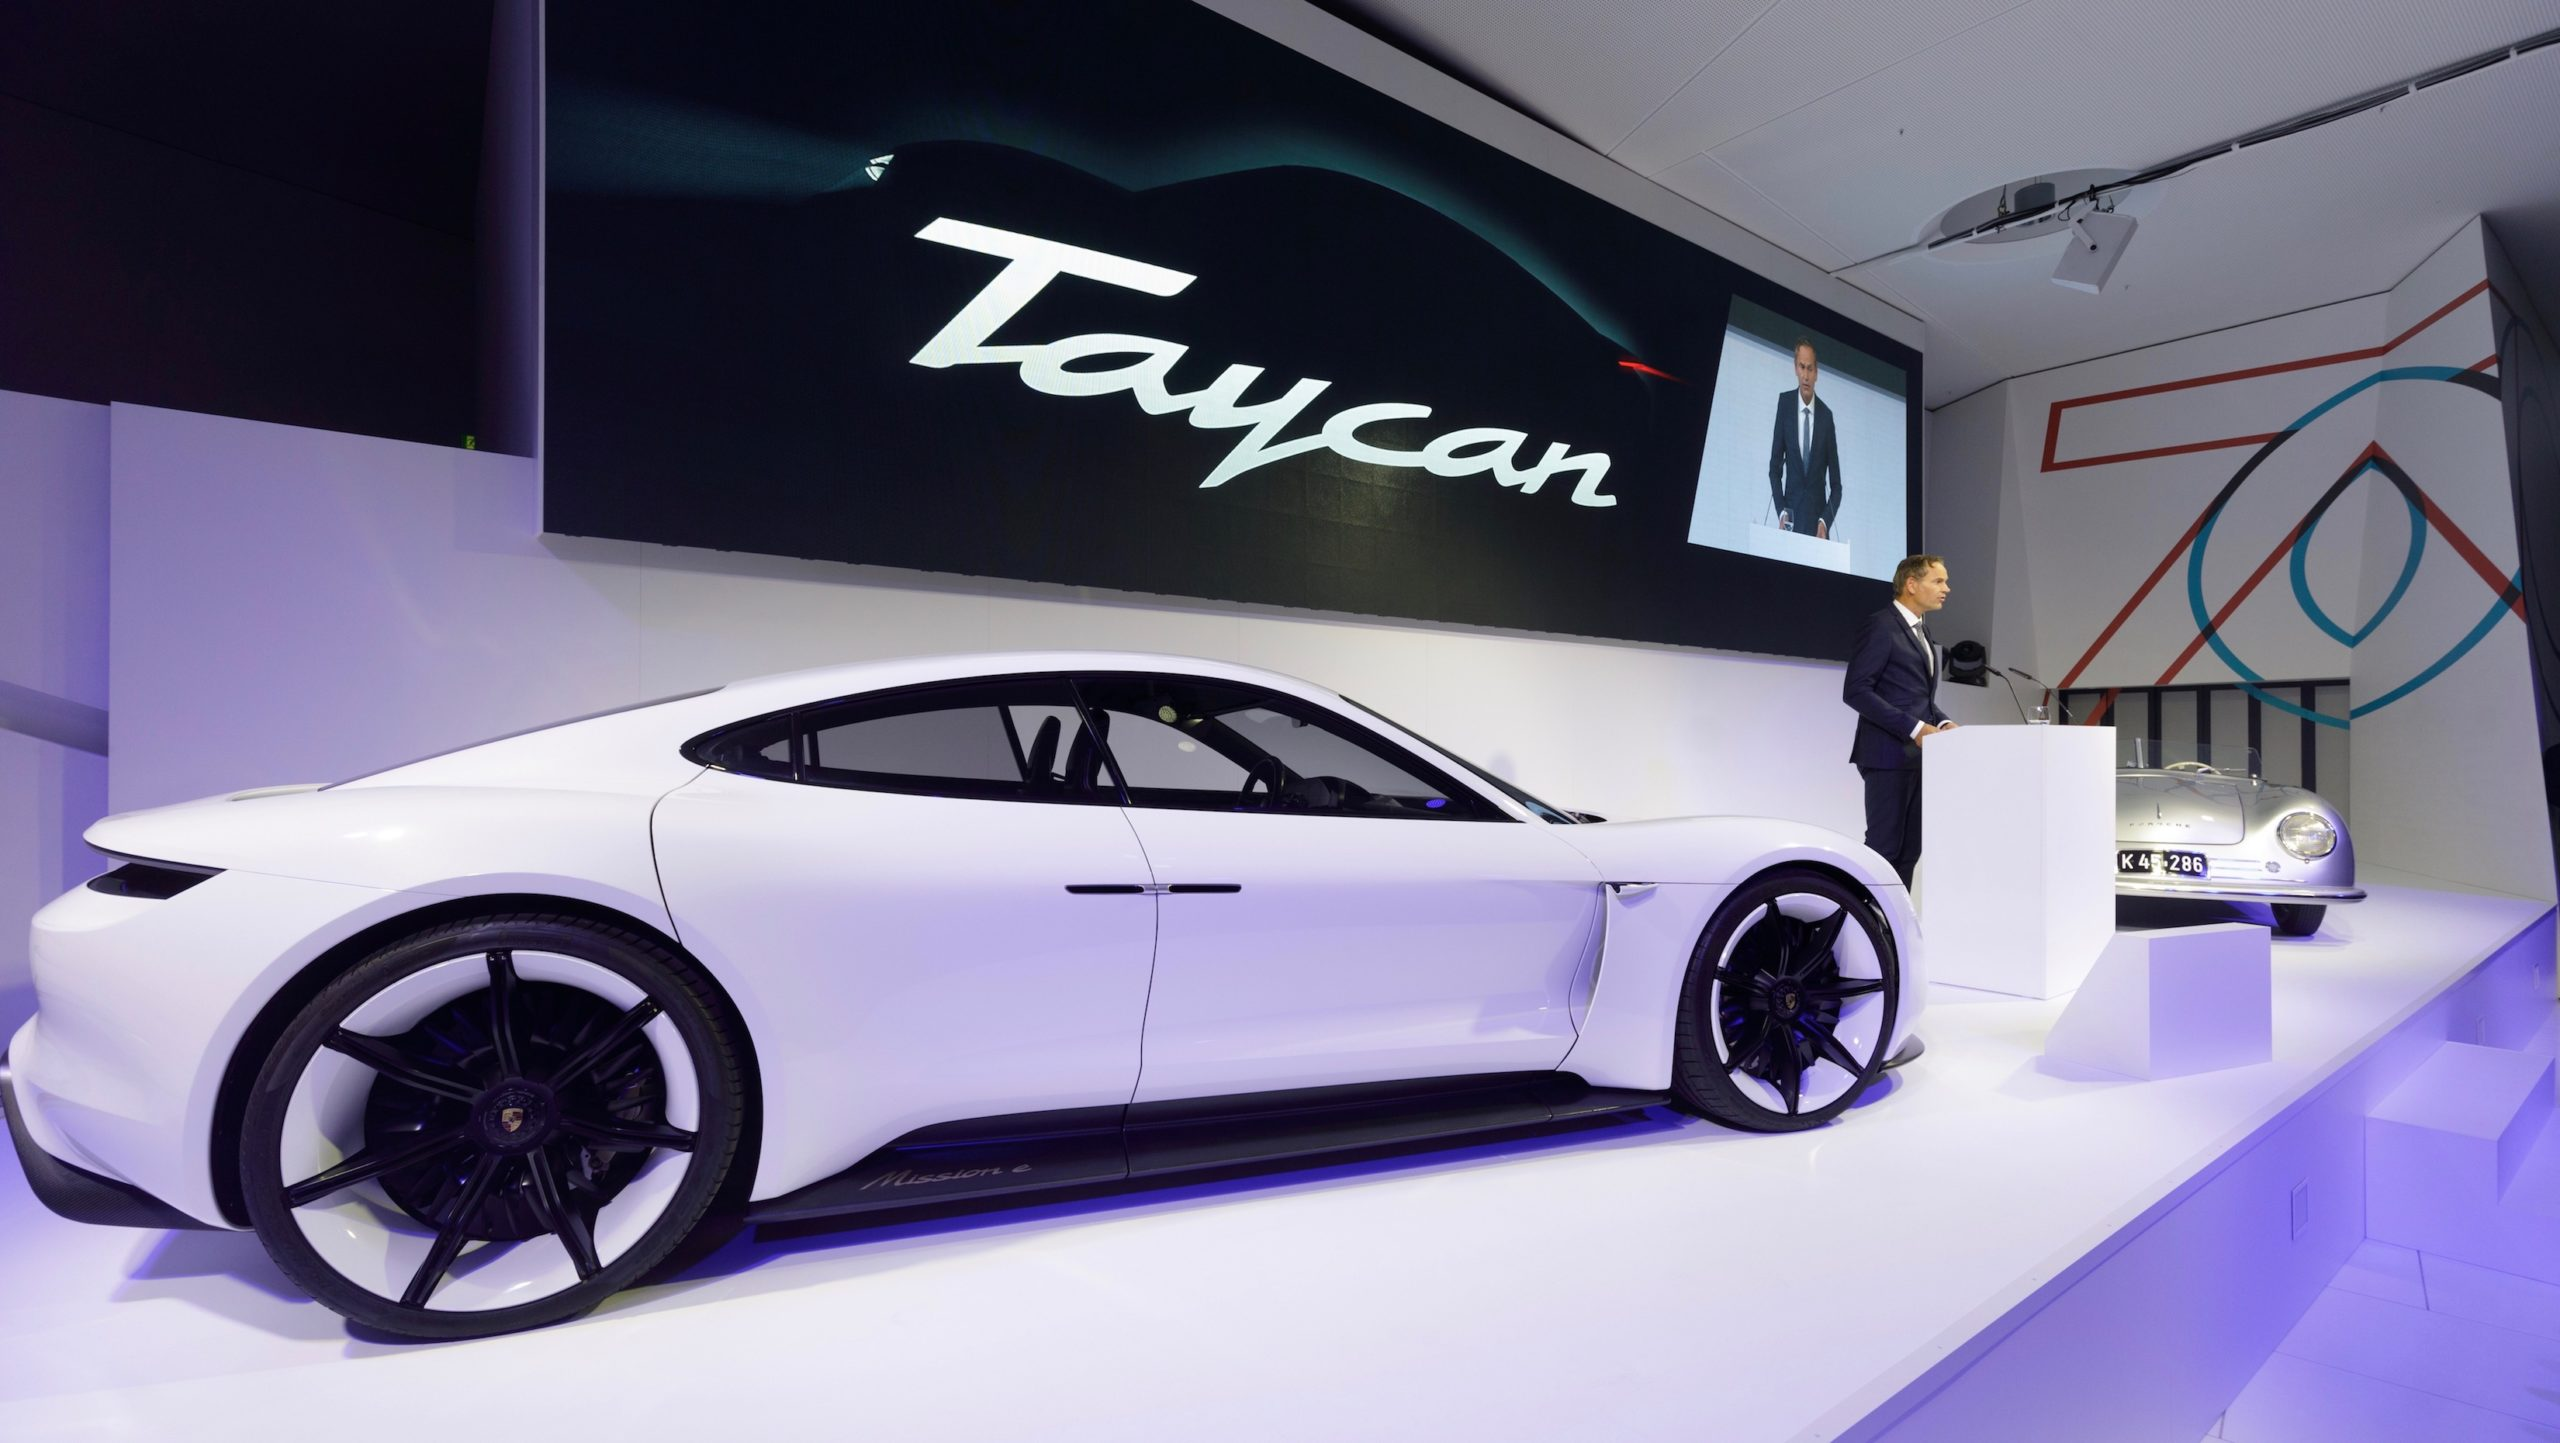 Porsche Taycan Mission E Becomes The 60 000 Fully Electric Porsche Taycan